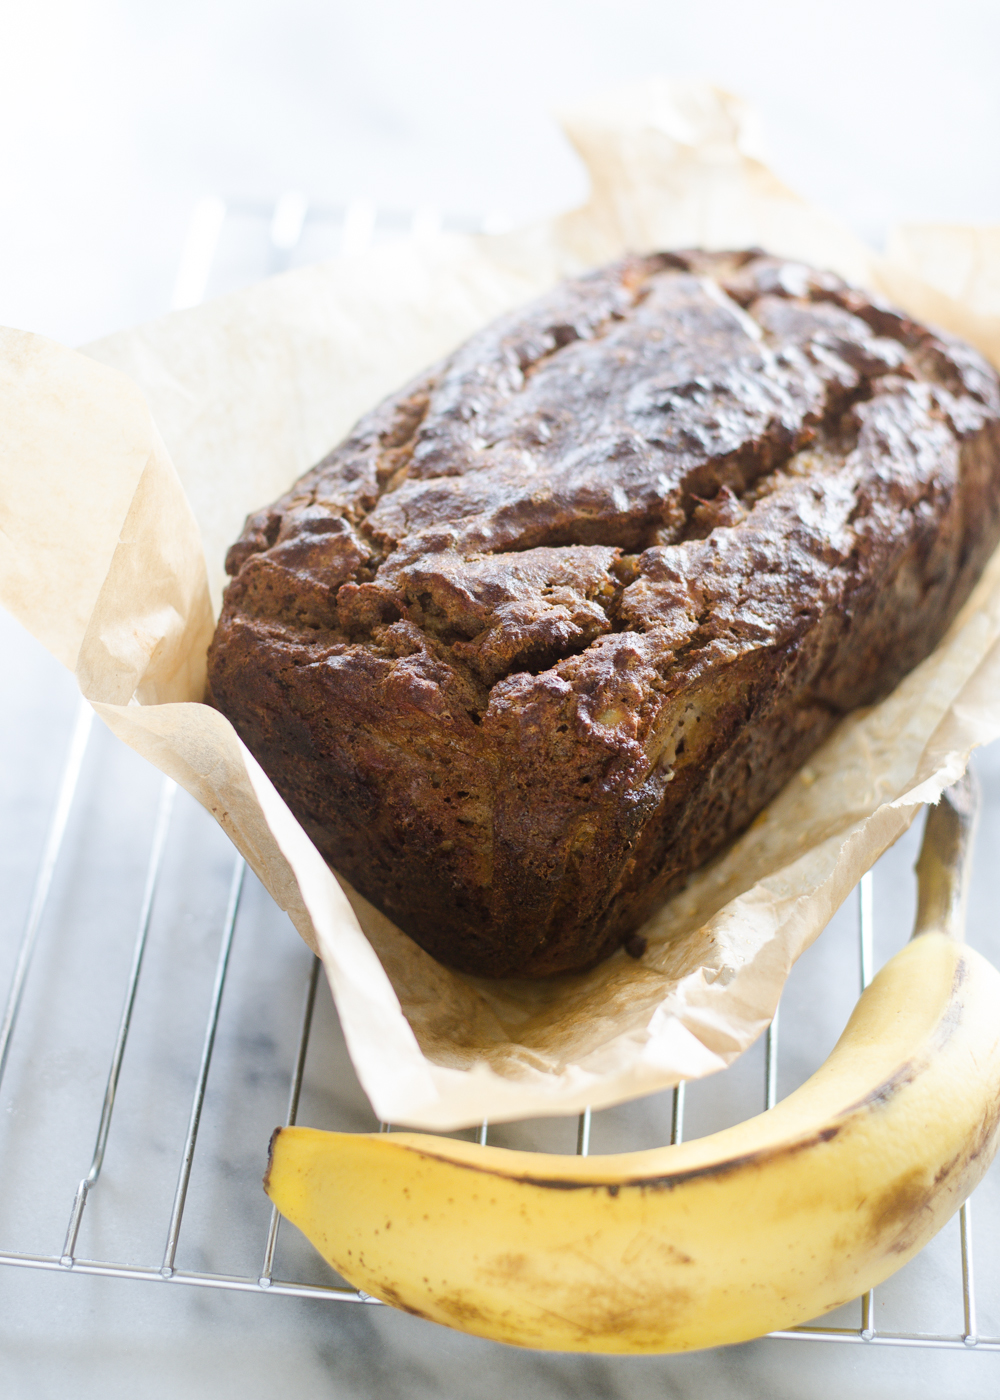 Coconut Flour Banana Bread (Gluten Free, Grain Free, Nut Free, Paleo Friendly, Sugar Free)